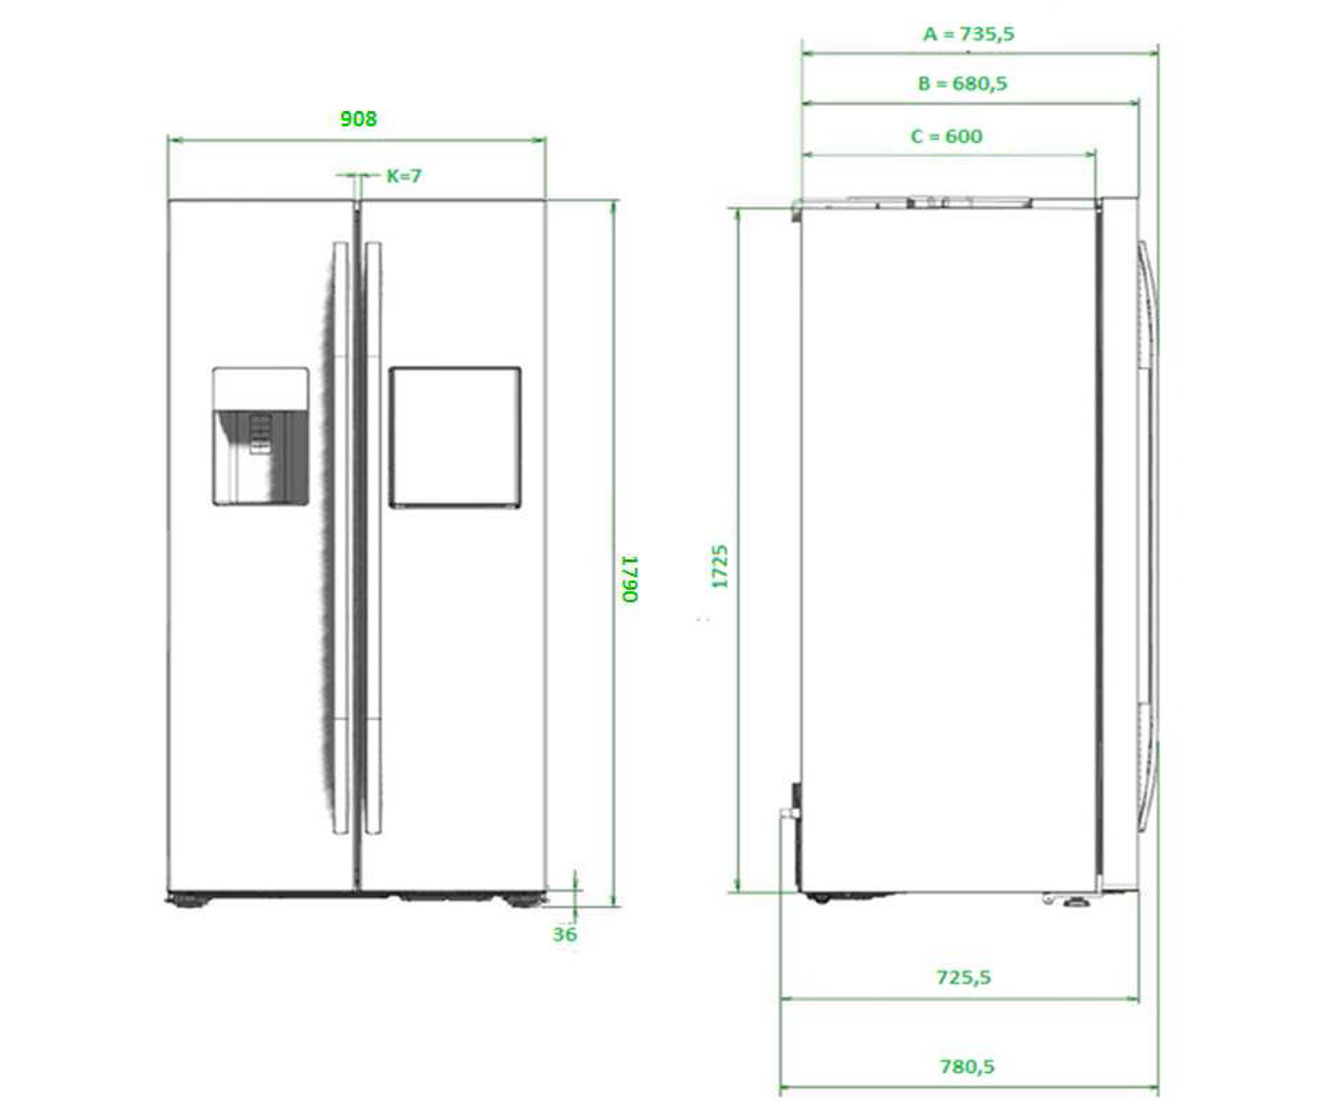 Dimension standard frigo top technical drawing with dimension standard frigo good vitrifrigo - Frigo americain dimension ...